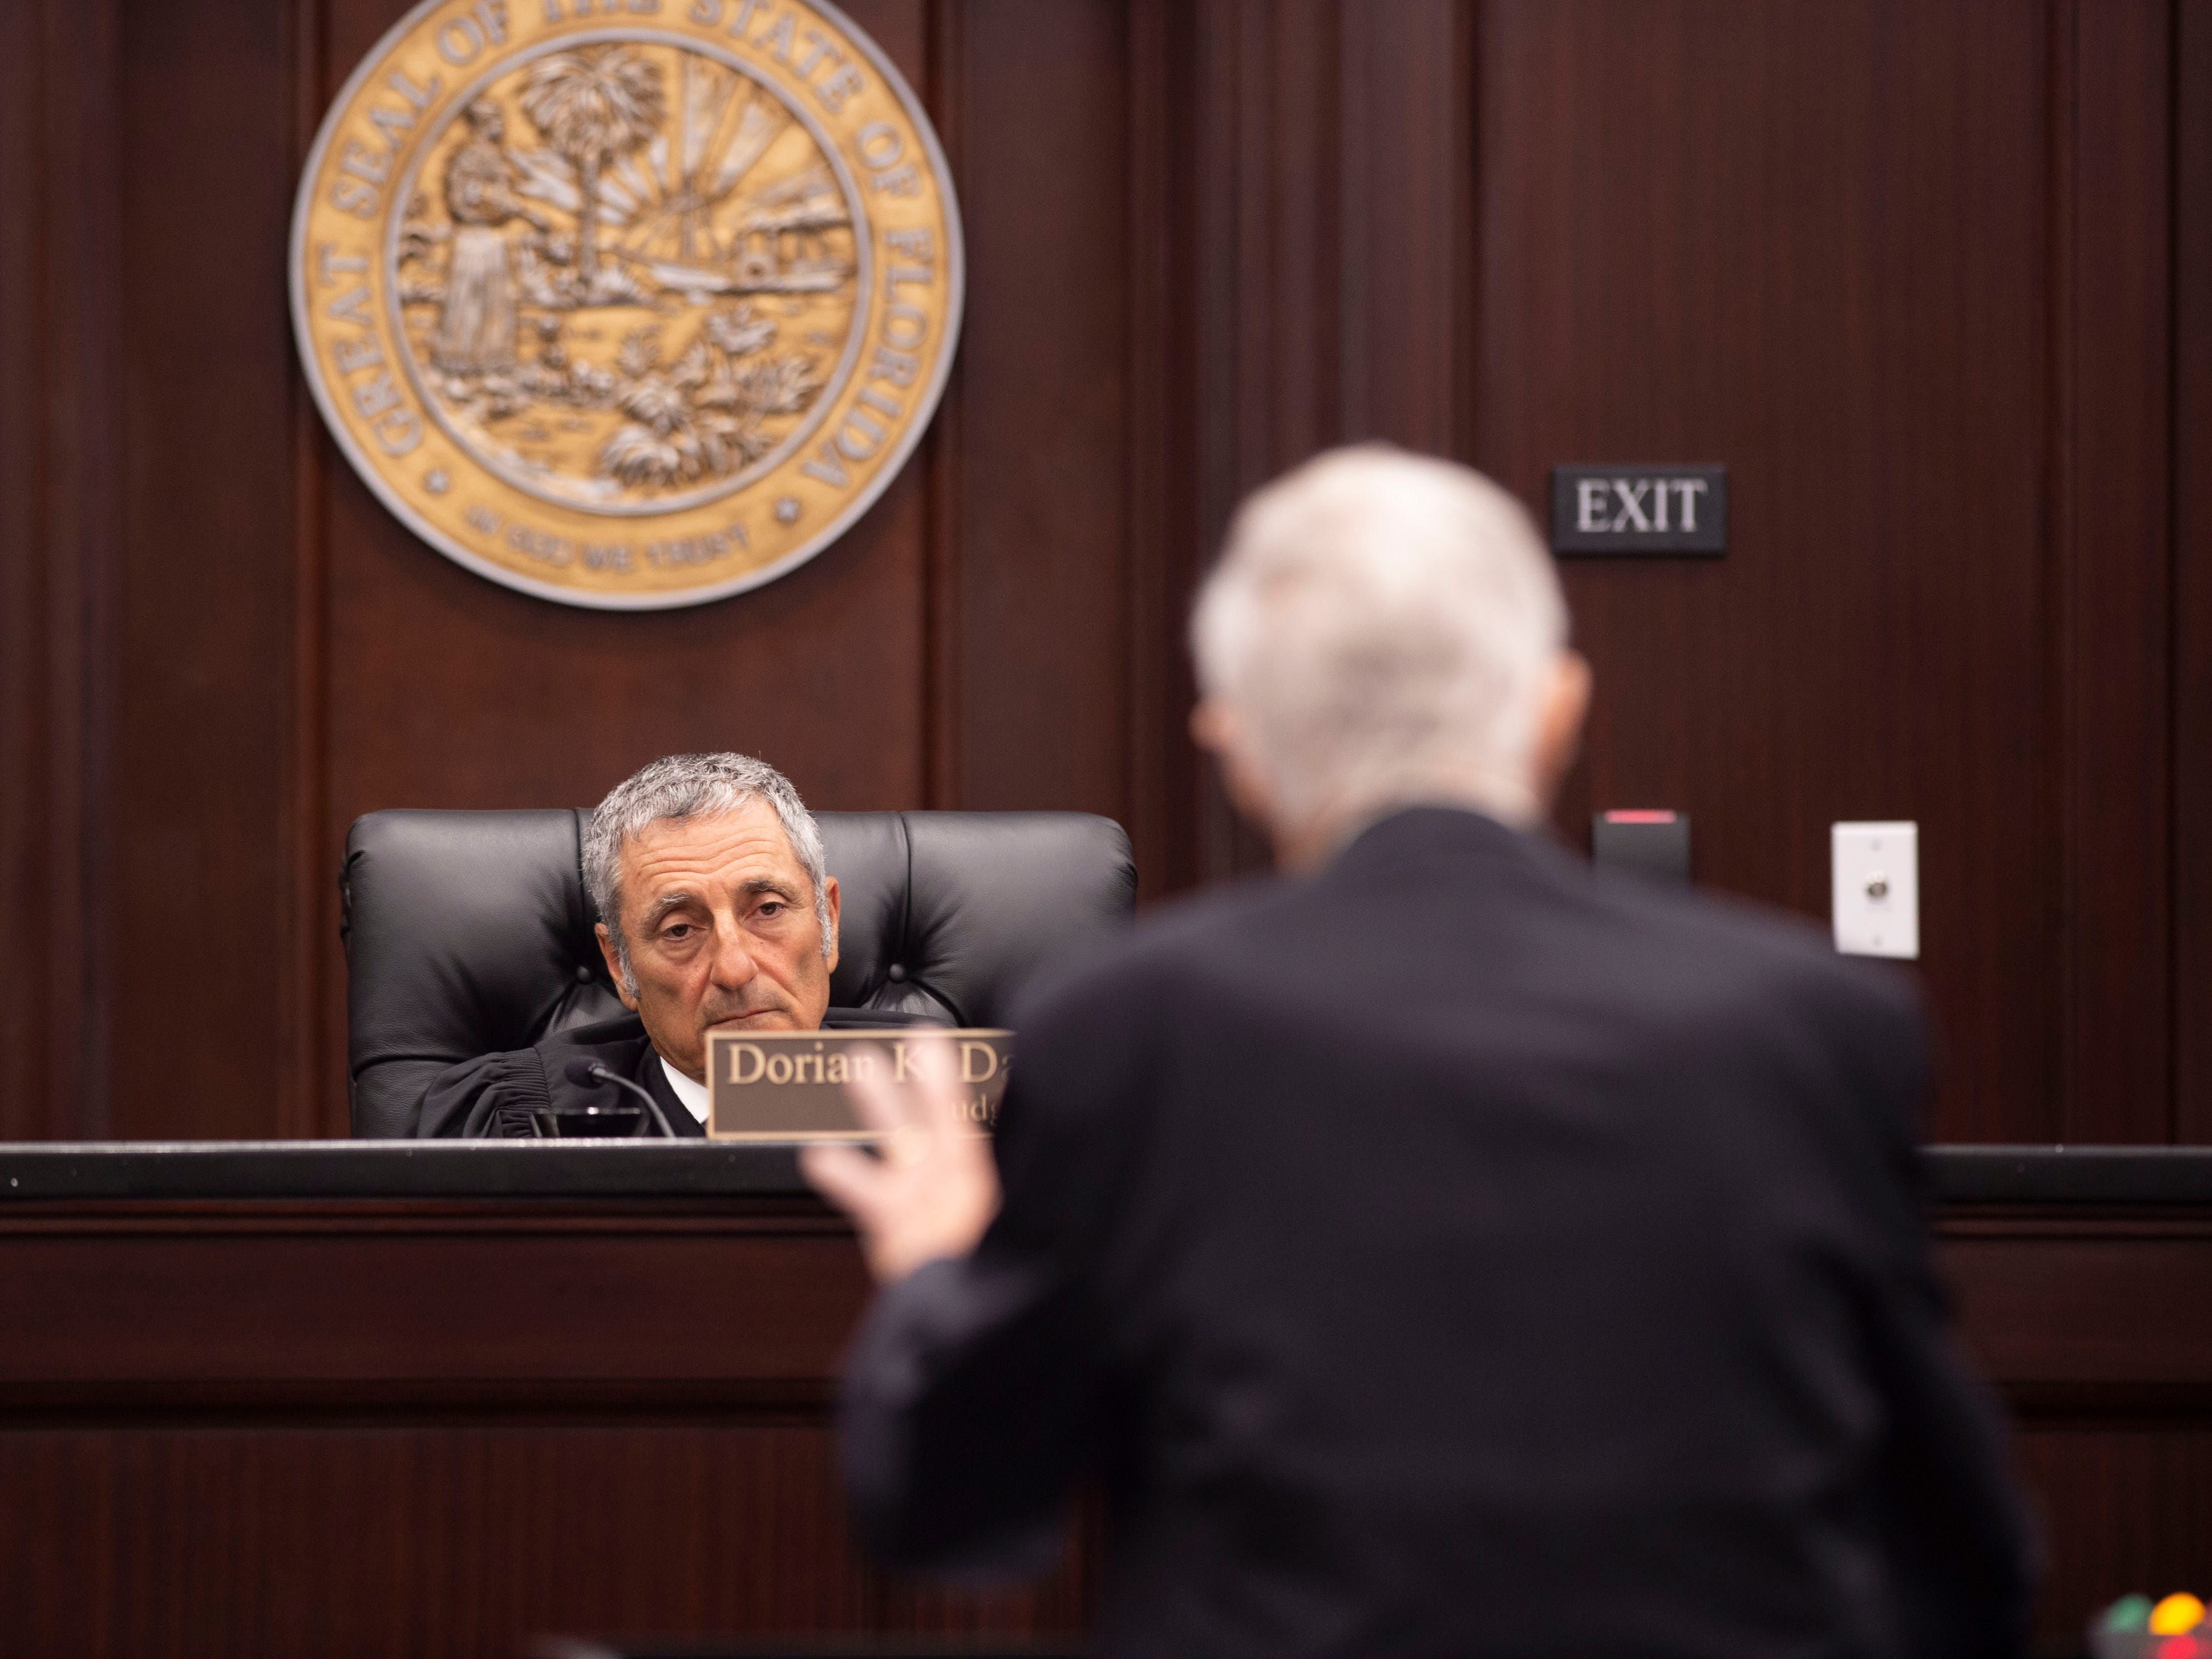 Attorneys representing Martin County environmentalist and former commissioner Maggy Hurchalla and rock quarry Lake Point made arguments to Fourth District Court of Appeal judges Burton C. Conner, Dorian K. Damoorgian and Alan O. Forst as Hurchalla appealed of a jury's decision that she owes $4.4 million to Lake Point, a rock quarry in western Martin County, during a hearing Tuesday, March 12, 2019, at the courthouse in West Palm Beach.